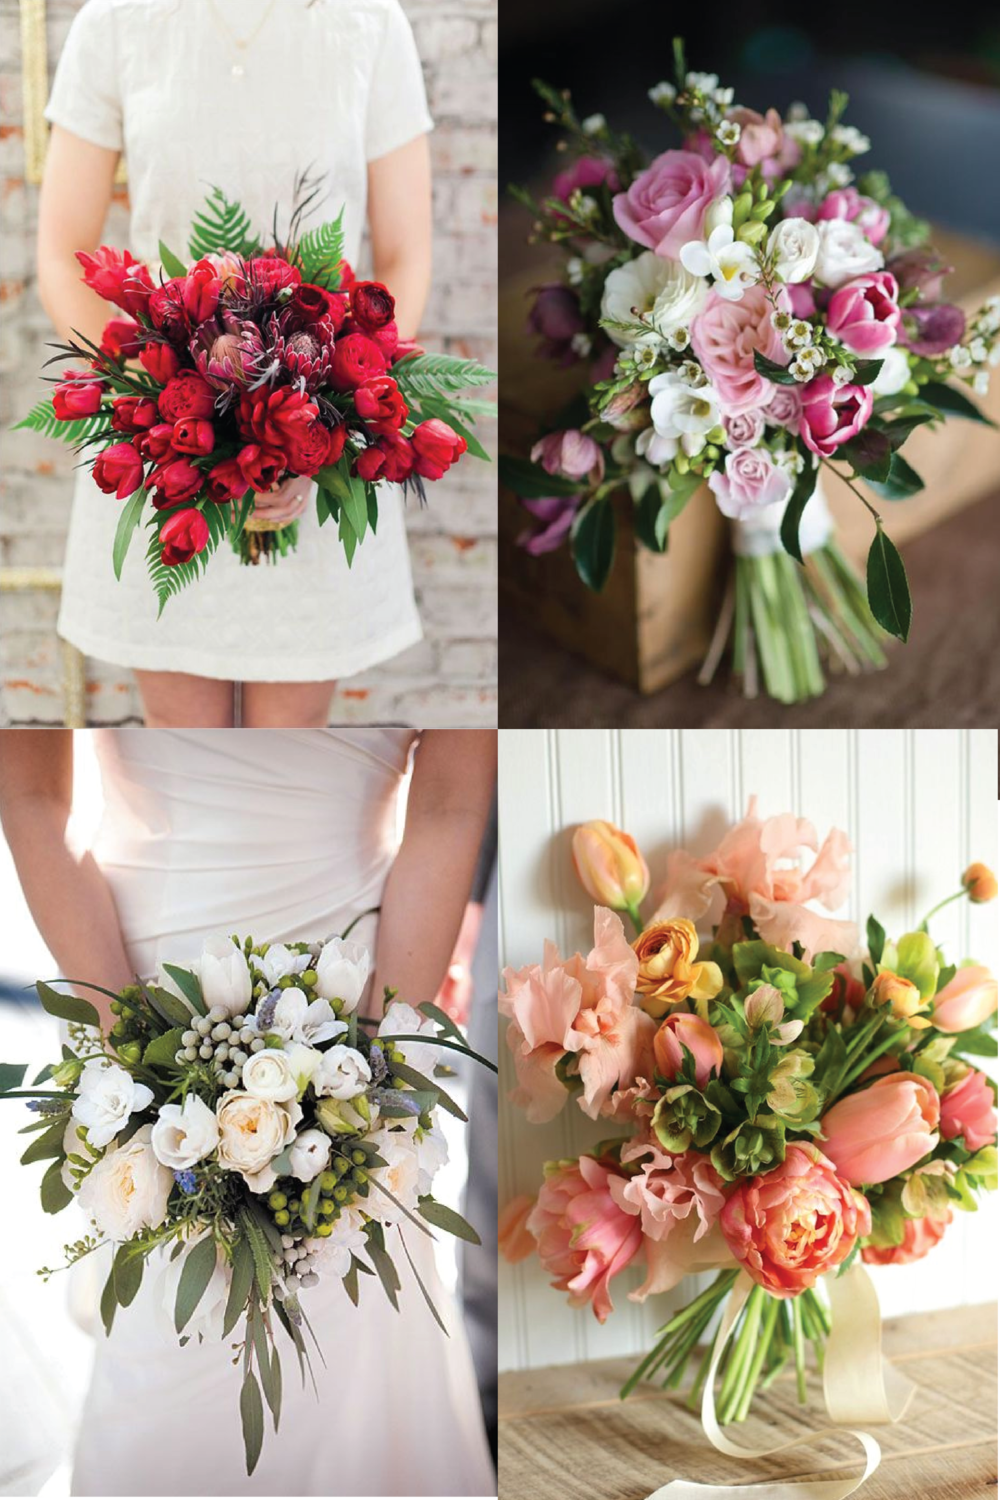 From clockwise, from top left: photo by Brittany Lauren; flowers by Magdalen Hill and photo by Natalie McNally; flowers by Love N Fresh Flowers; flowers by Kimball Floral and photo by Tracy Carolyn.